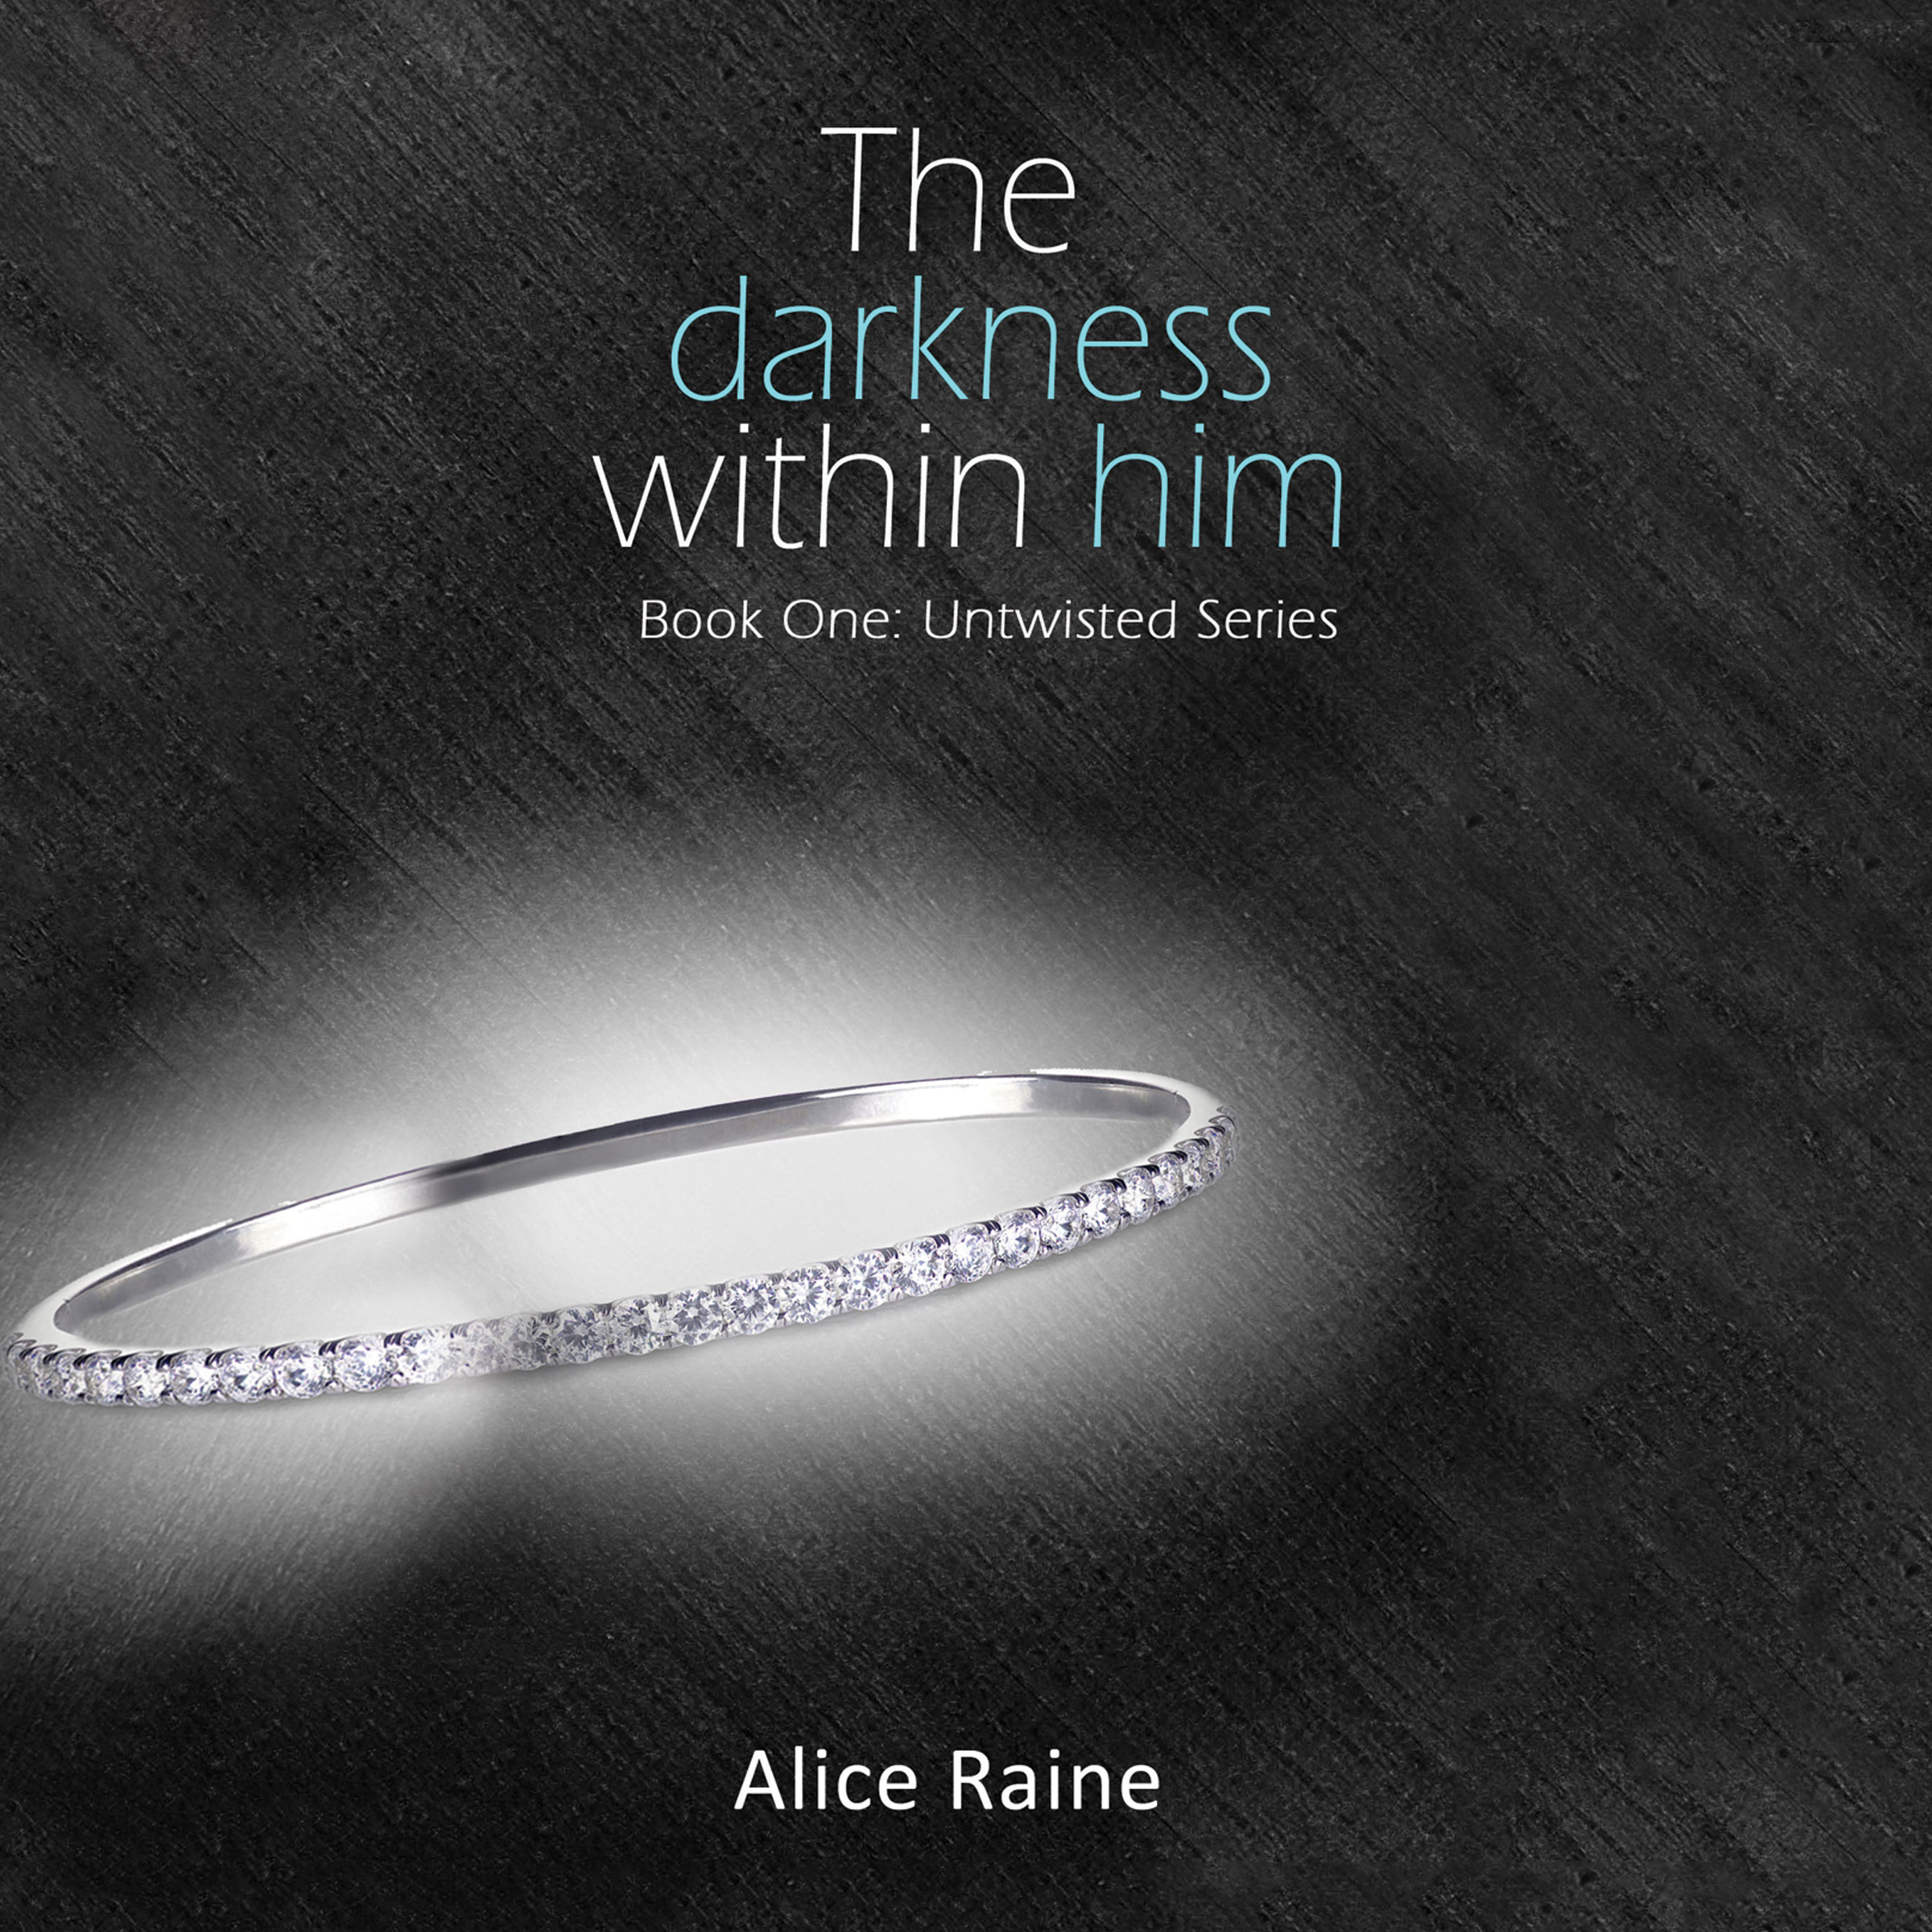 Printable The Darkness Within Him Audiobook Cover Art